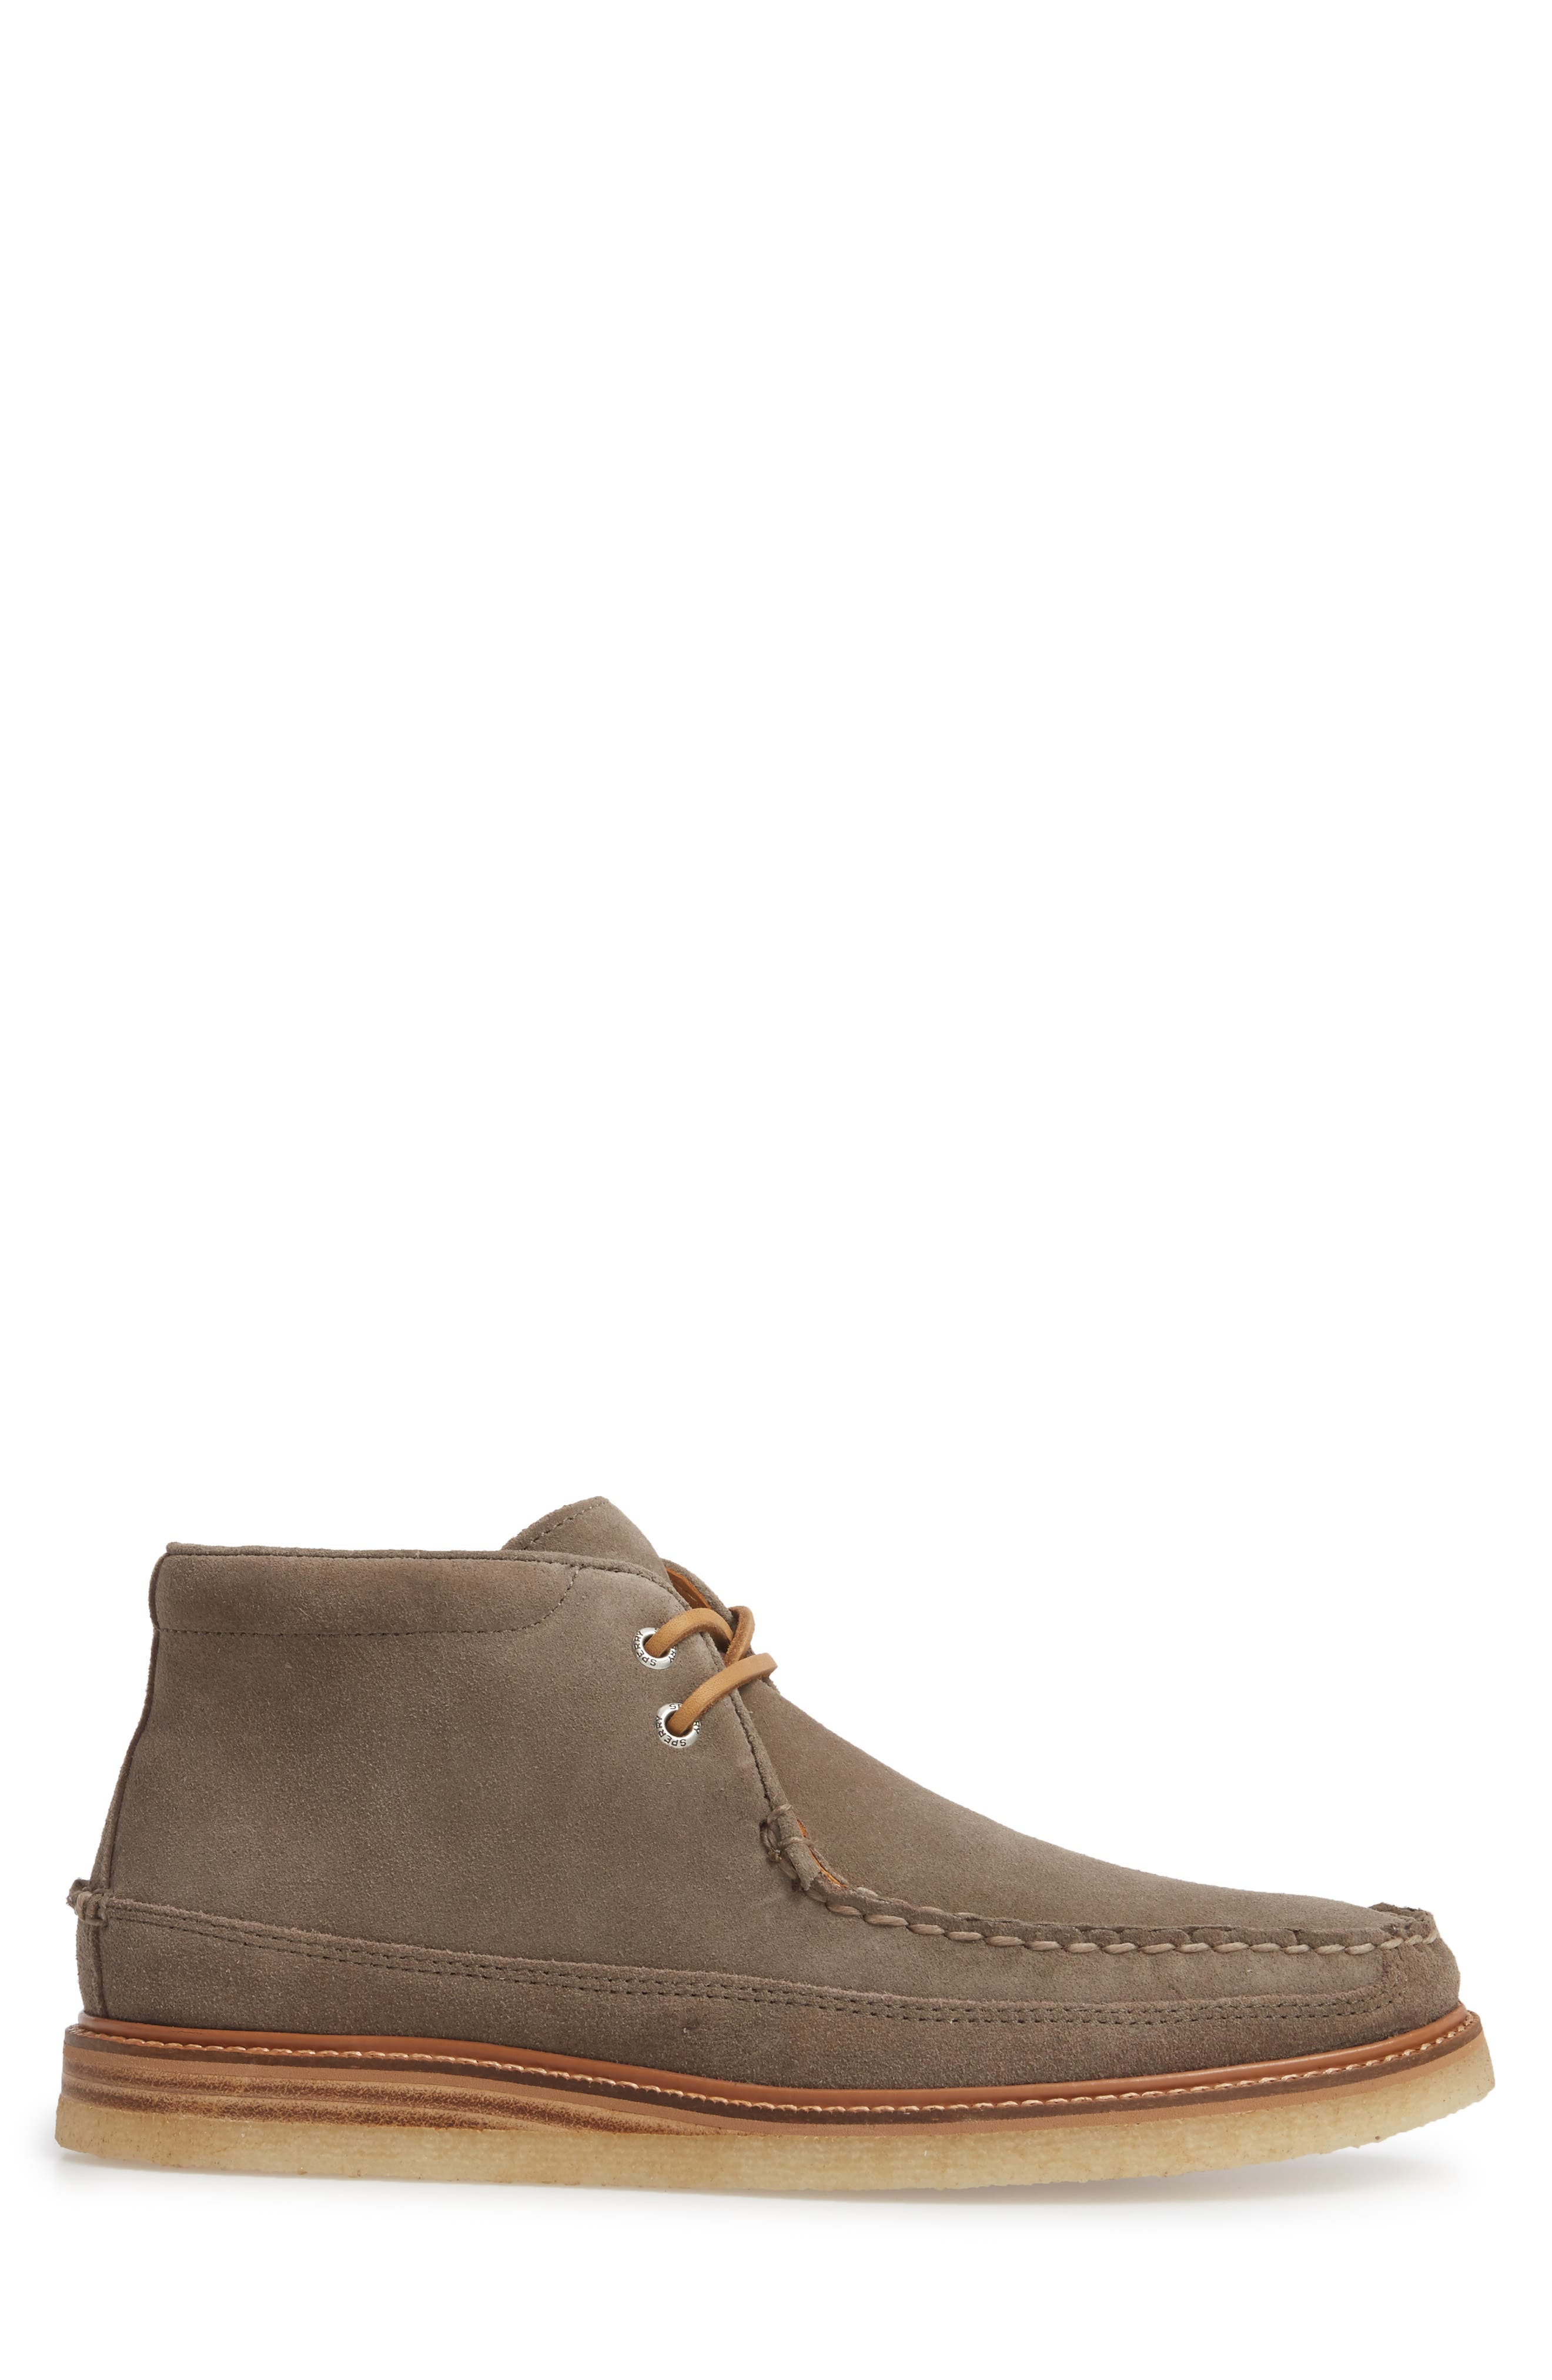 Gold Cup Chukka Boot,                             Alternate thumbnail 3, color,                             Taupe Grey Leather/ Suede